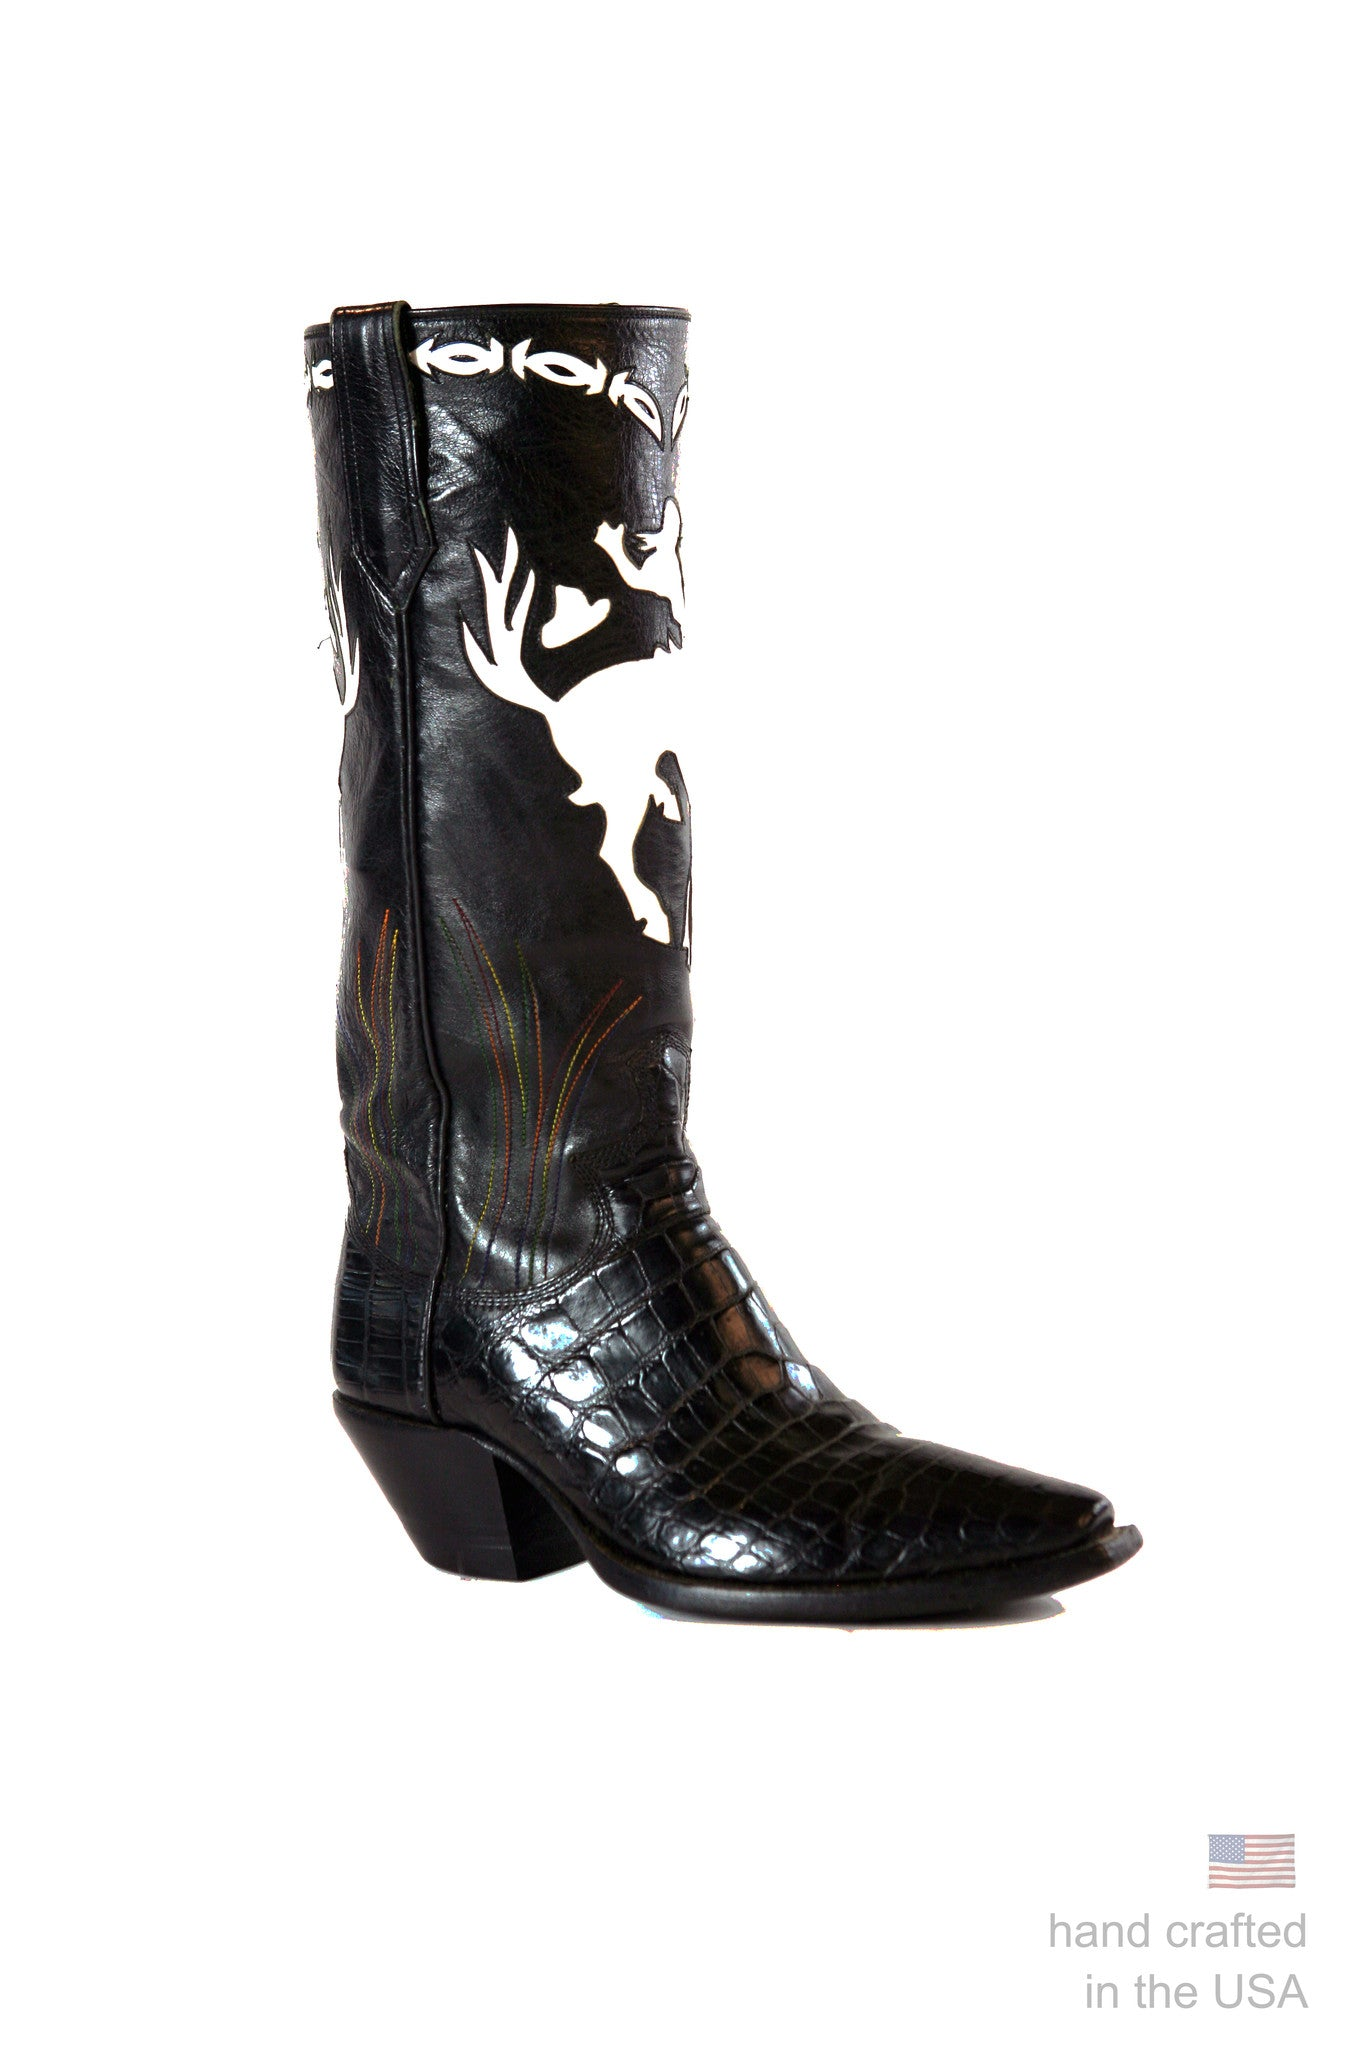 The Bronco - Custom Designed Alligator Boots: 46A